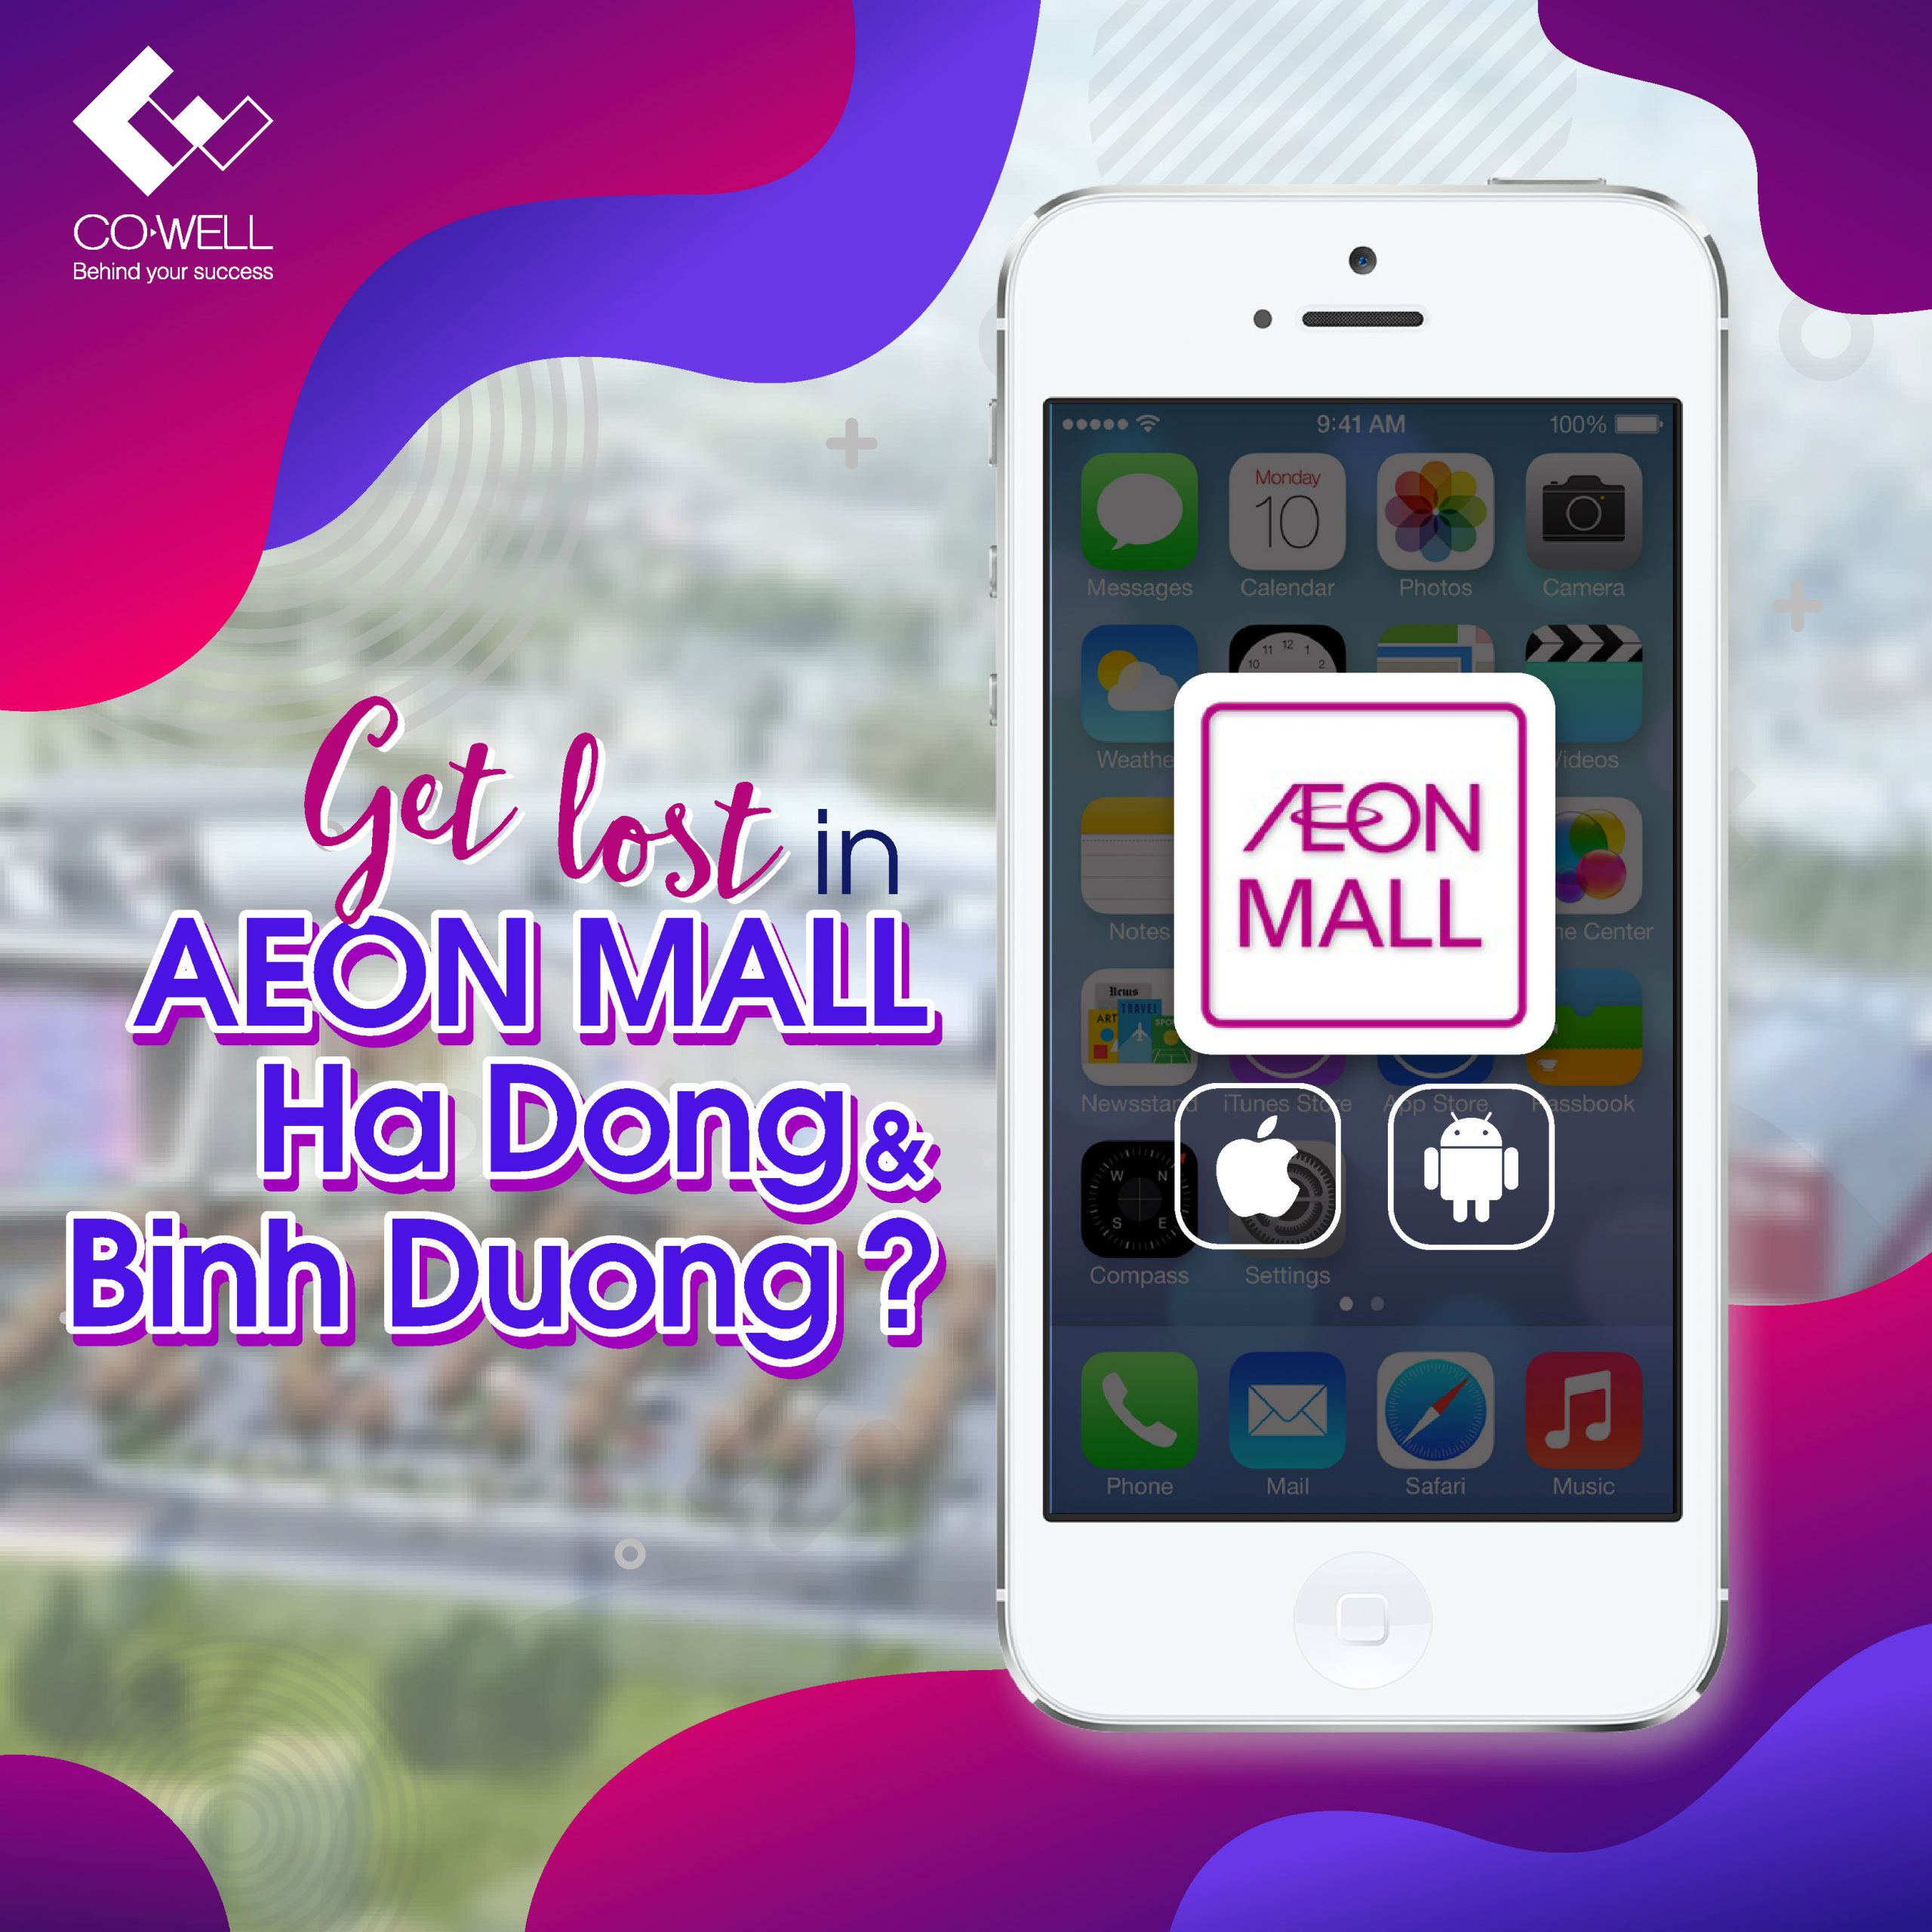 LOST IN AEONMALL? AEONMALL VIETNAM APP IS HERE FOR YOU